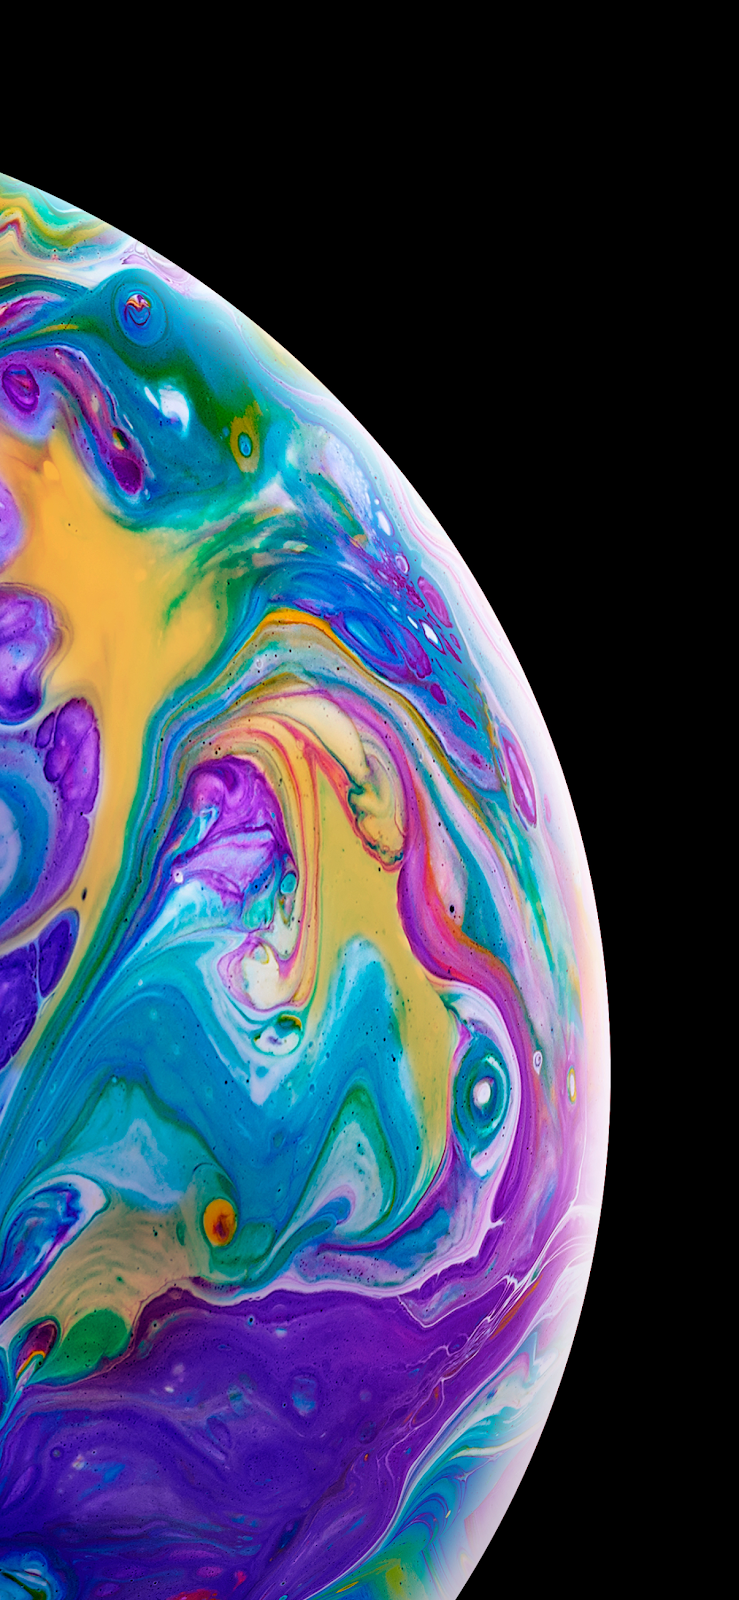 Another Colorful Bubble Iphone X Wallpaper Iphone Android Background Followme Apple Wallpaper Iphone Iphone Background Wallpaper Iphone Wallpaper